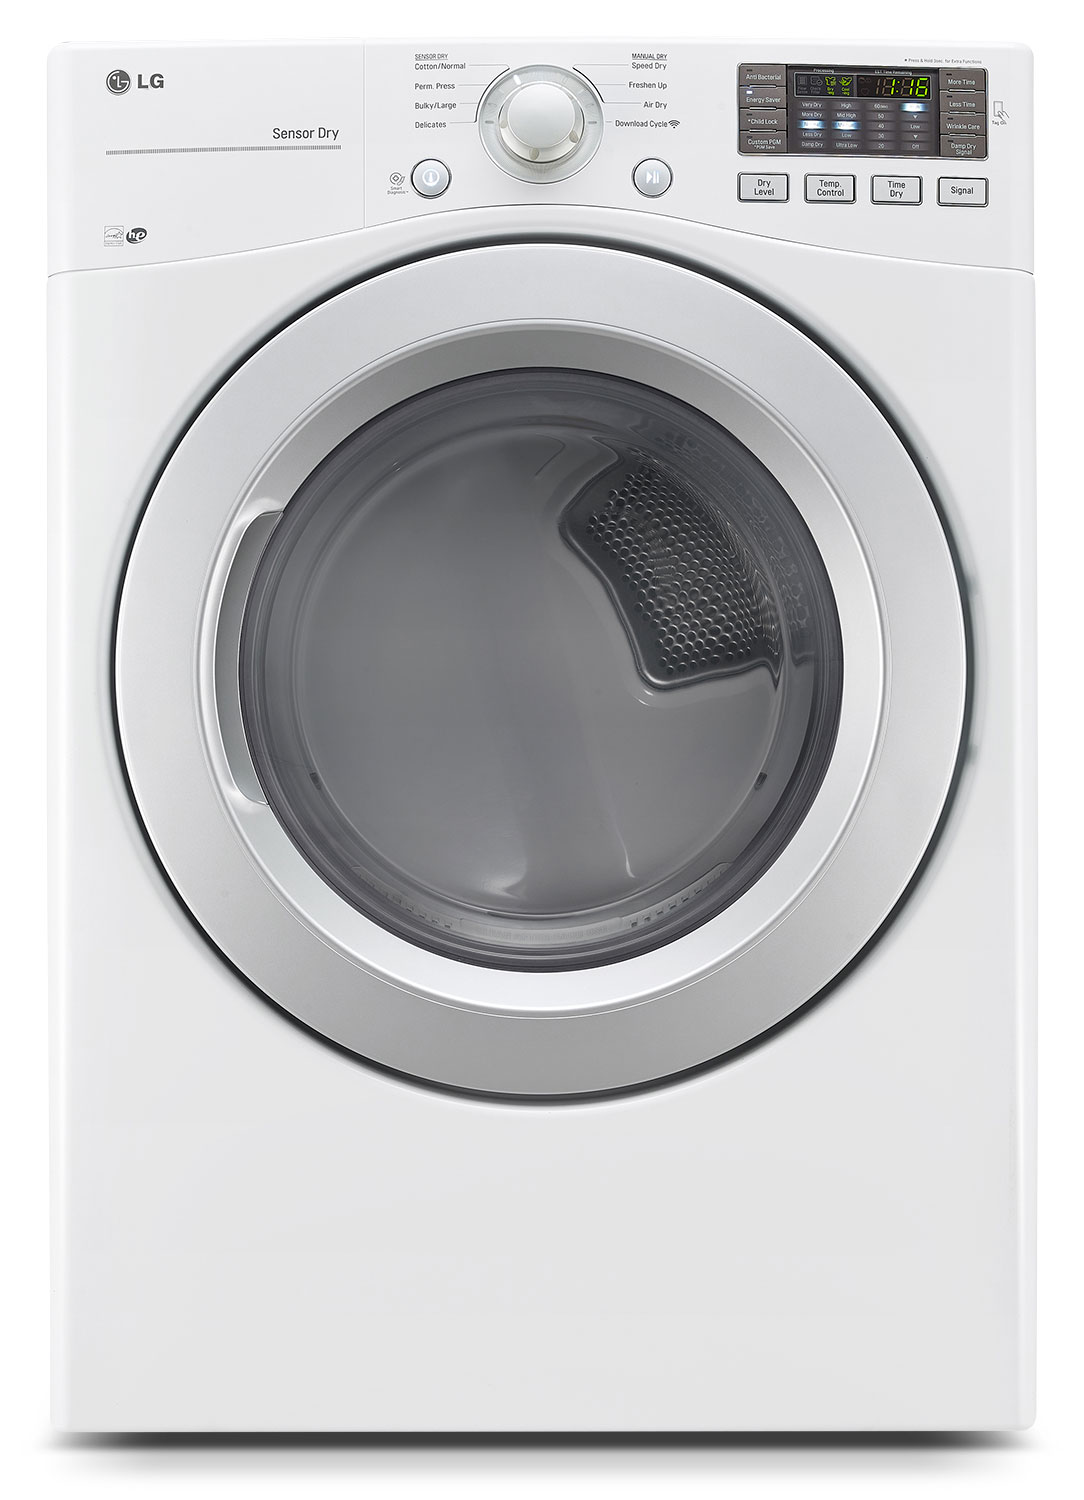 LG 7.4 Cu. Ft. Ultra-Large Capacity Electric Dryer with Sensor Dry System – White